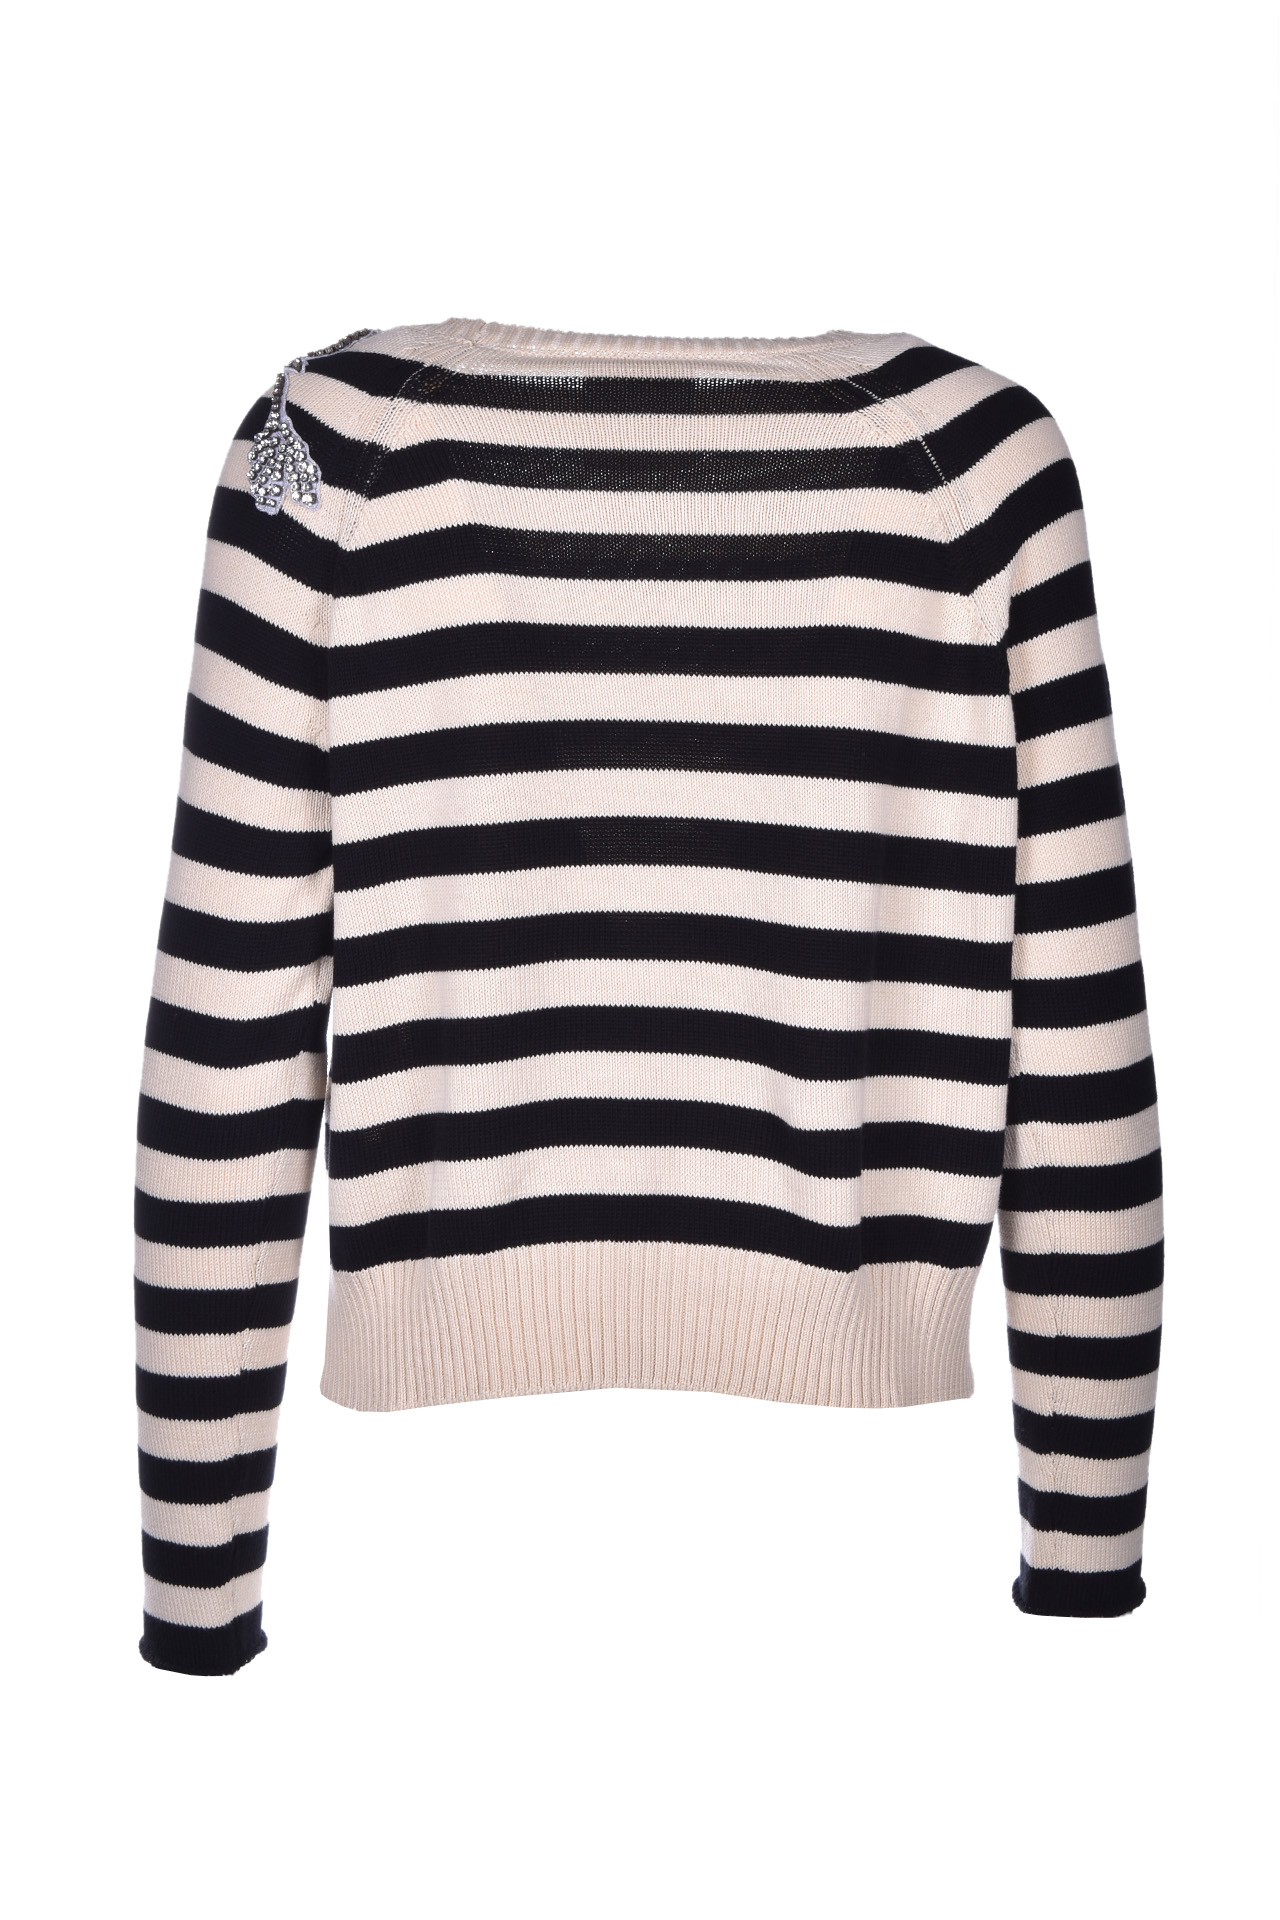 sarah Striped cotton sweater - black SEMICOUTURE | Sweaters | Y0SH01RIG87